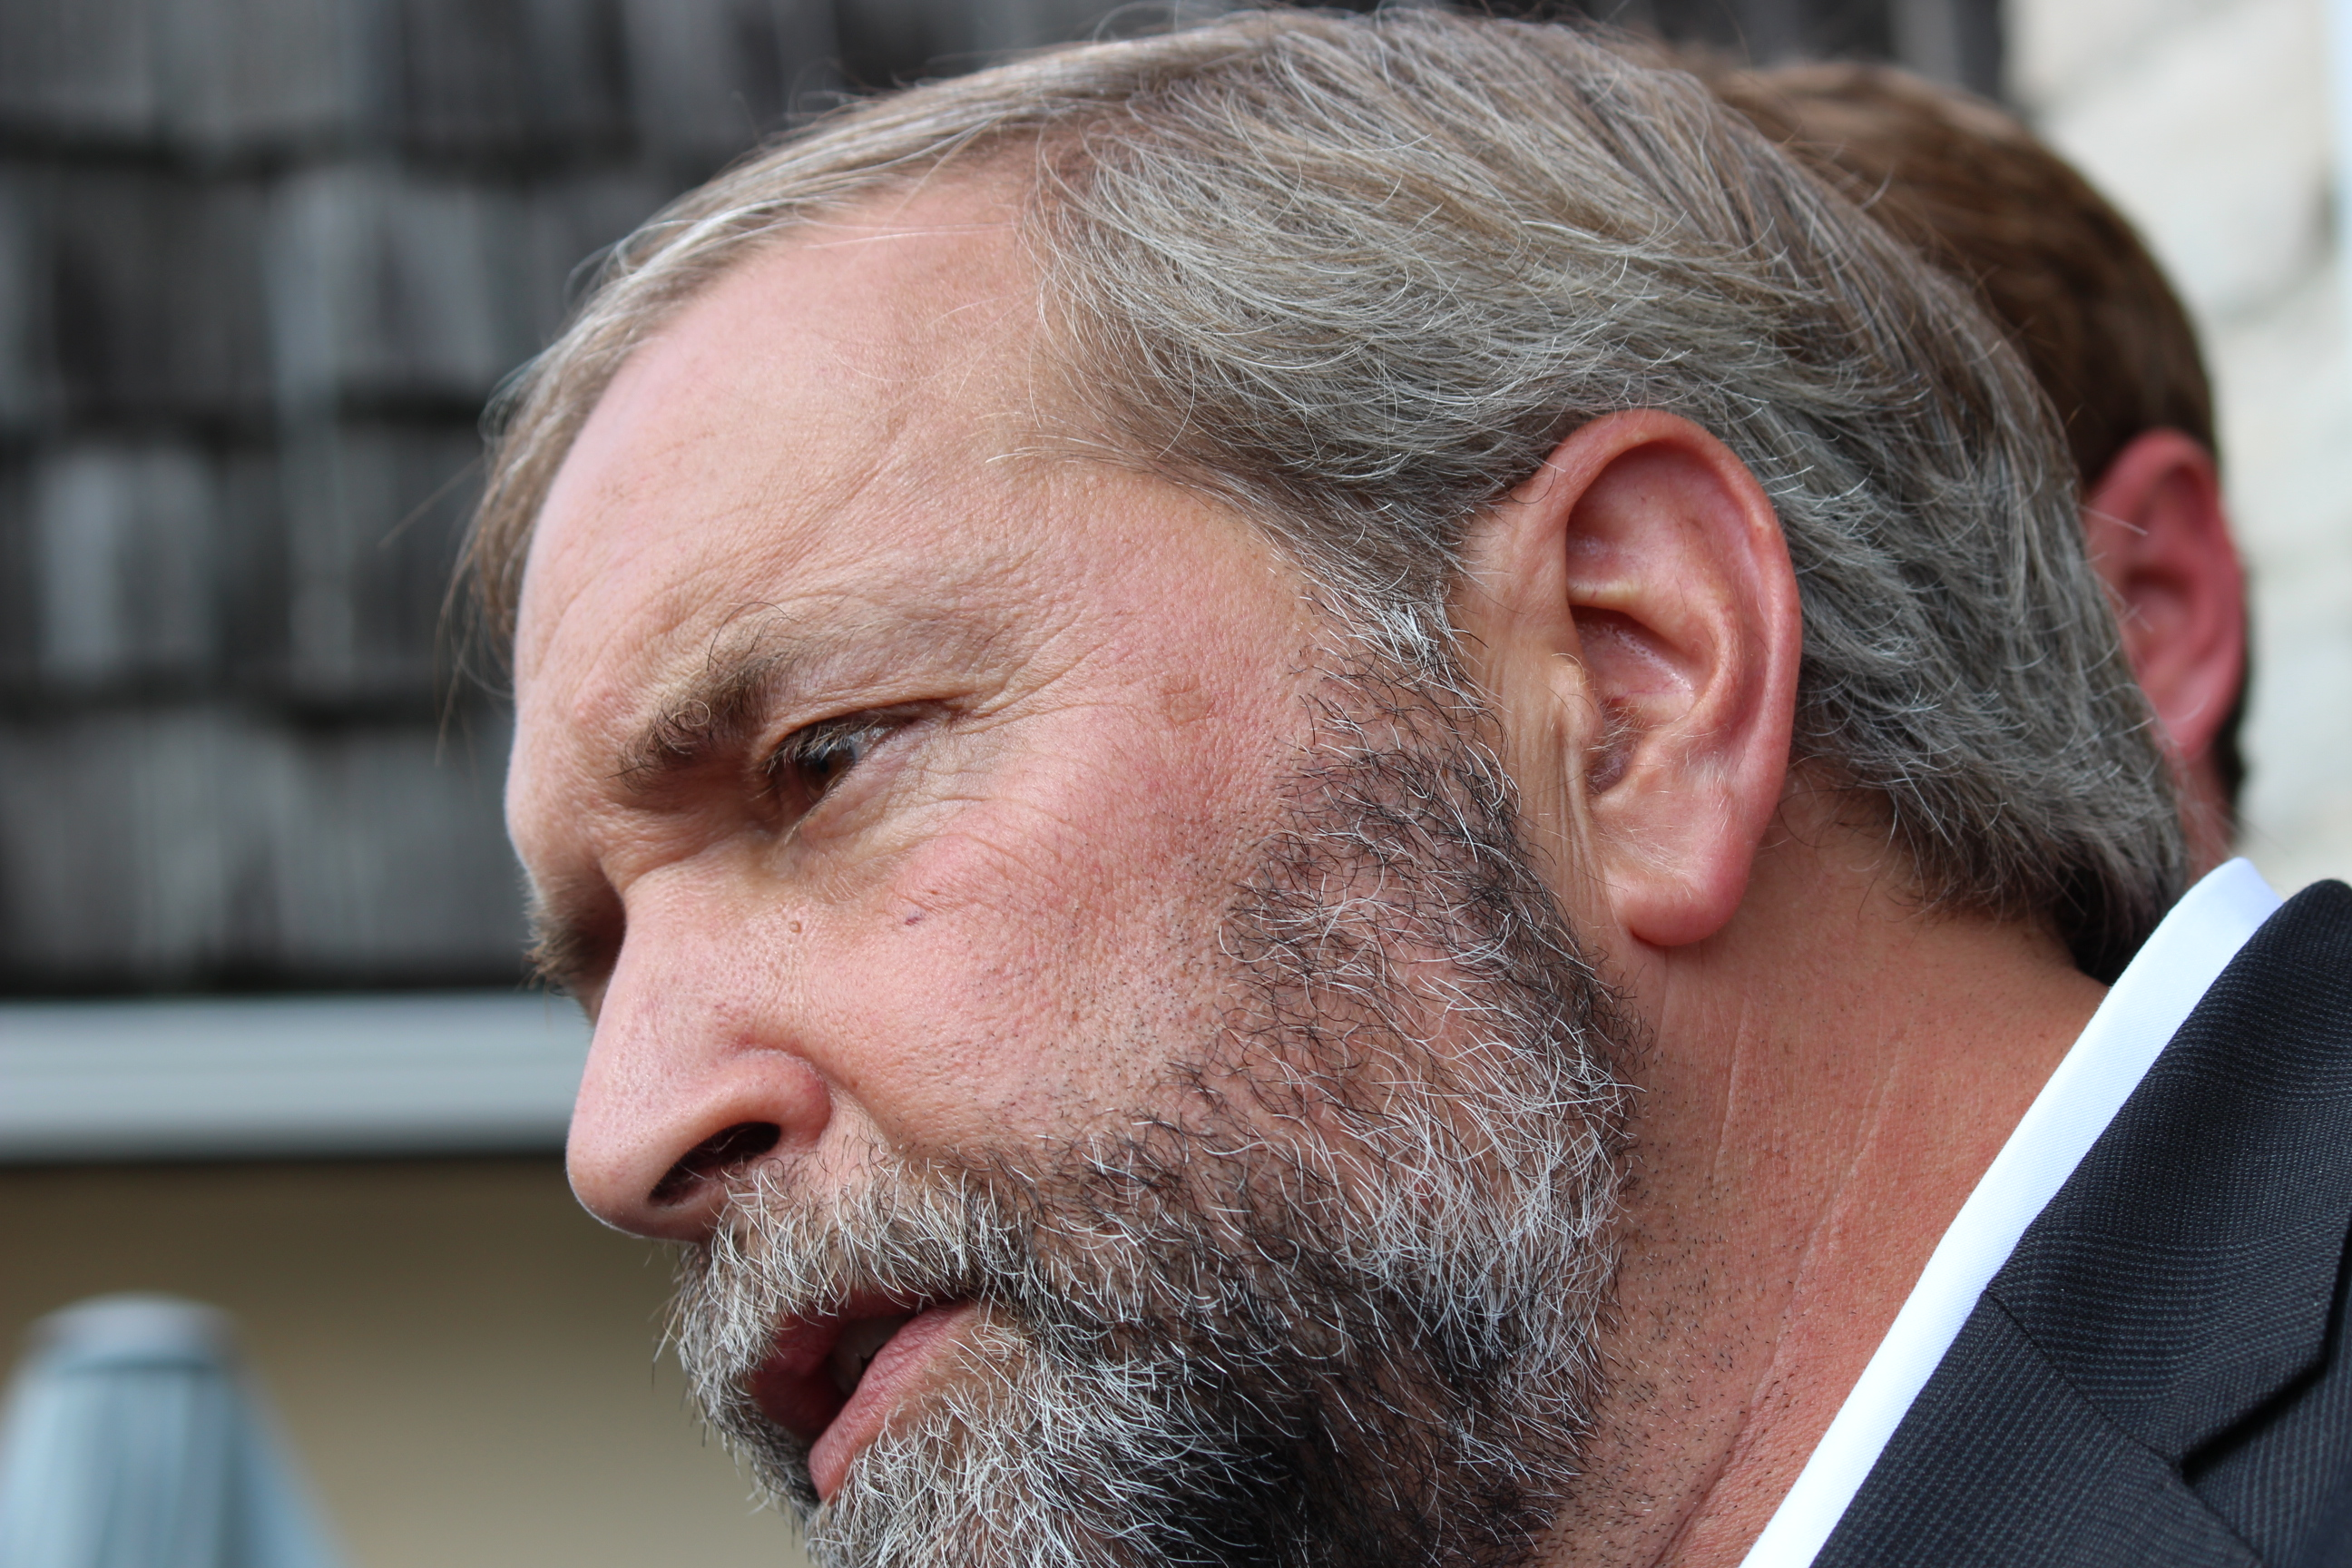 Federal NDP Leader Thomas Mulcair speaking with reporters after meeting with veterans in Amherstburg, August 21 2014. (Photo by Adelle Loiselle.)